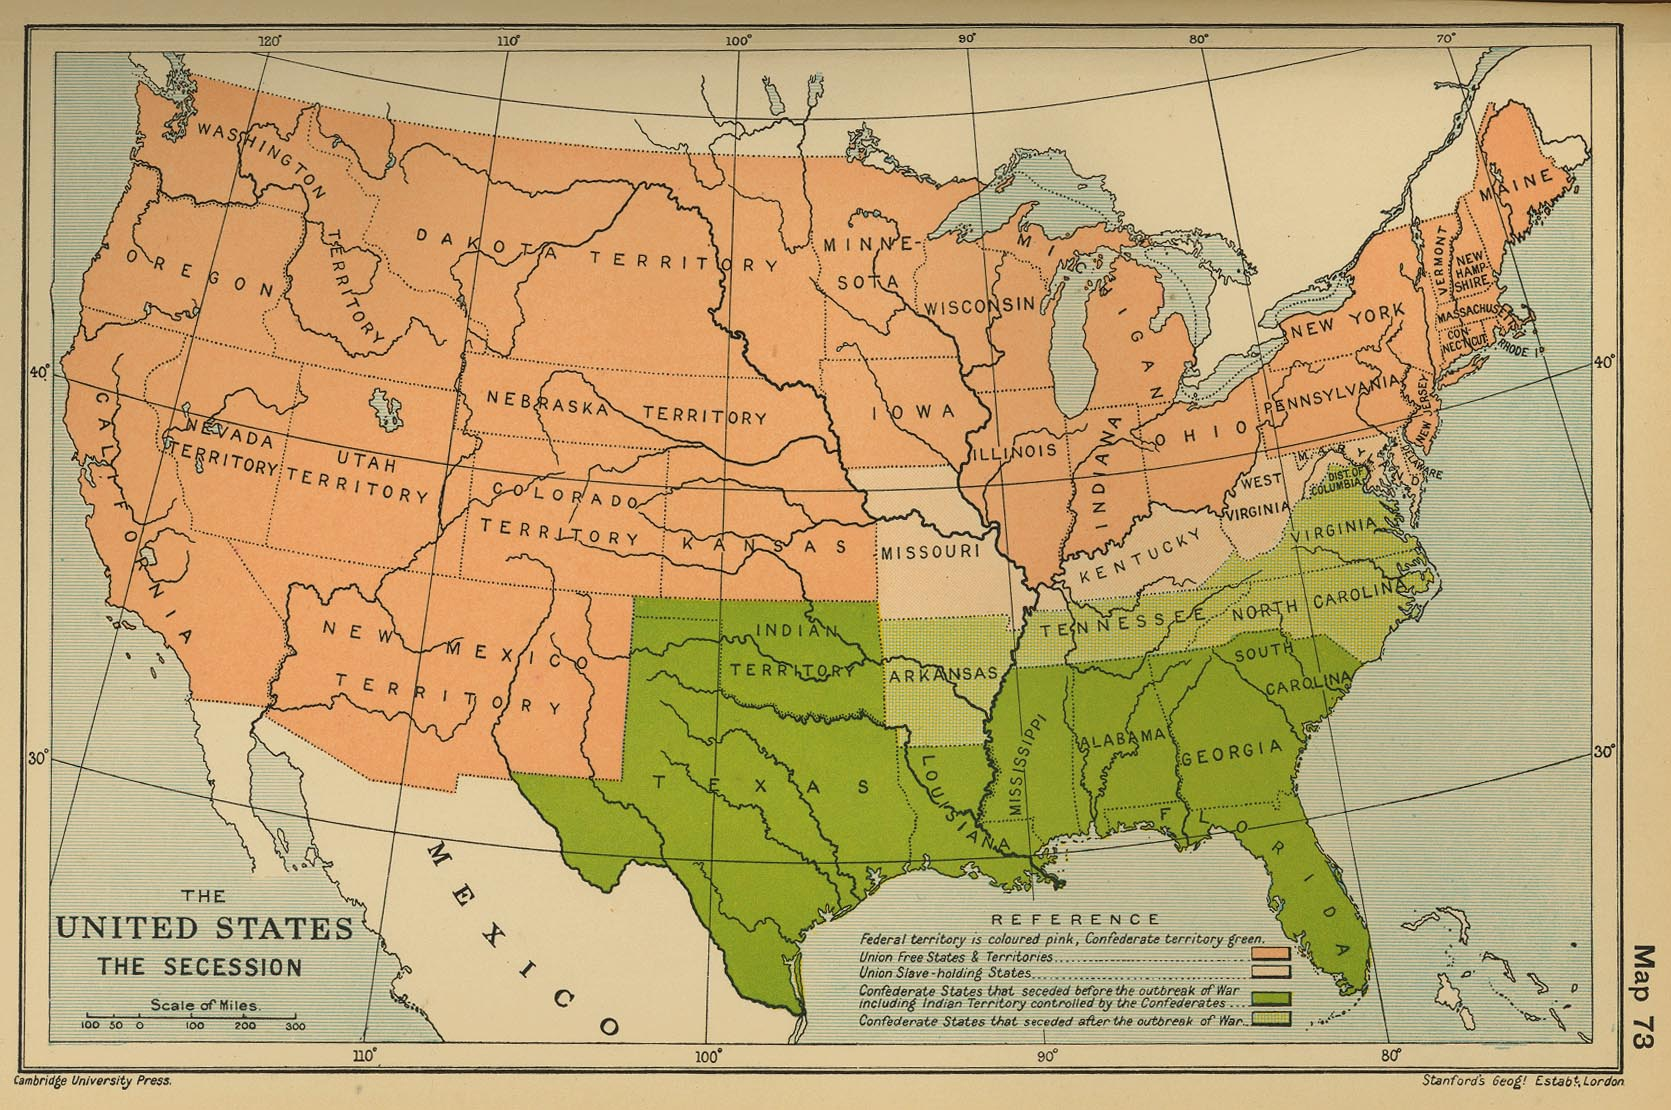 Map Of The United States The Secession 1860